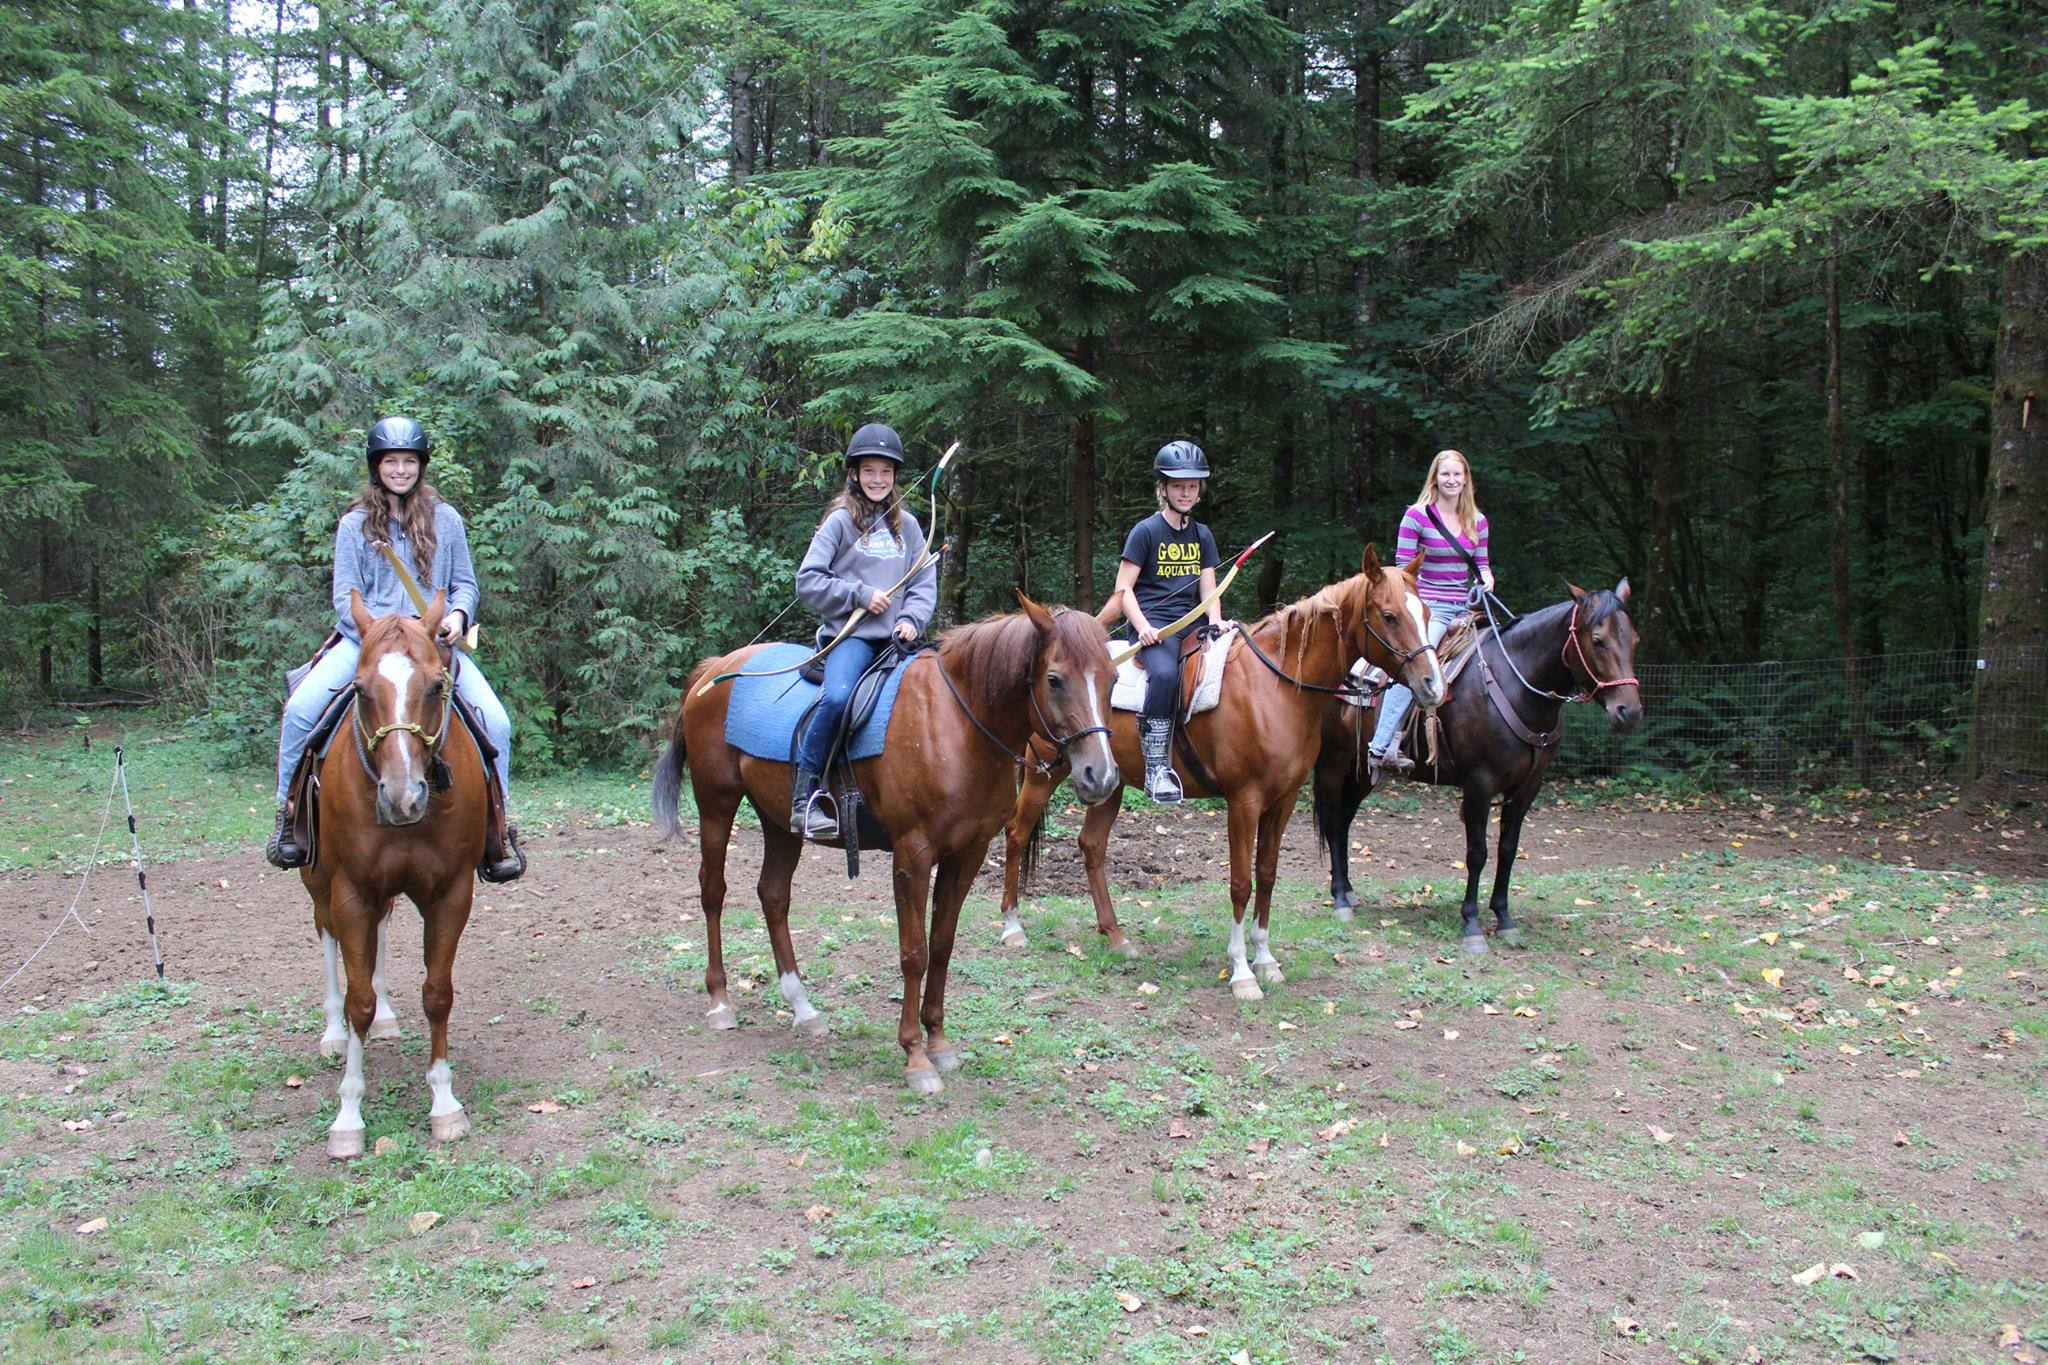 Weekend clinics can be 1-3 days long, and are $100 a day per person if you bring your own horse. Or you can borrow one from the ranch at $25 a day. Archery Equipment for clinics is available for rent for $20 a day per person.